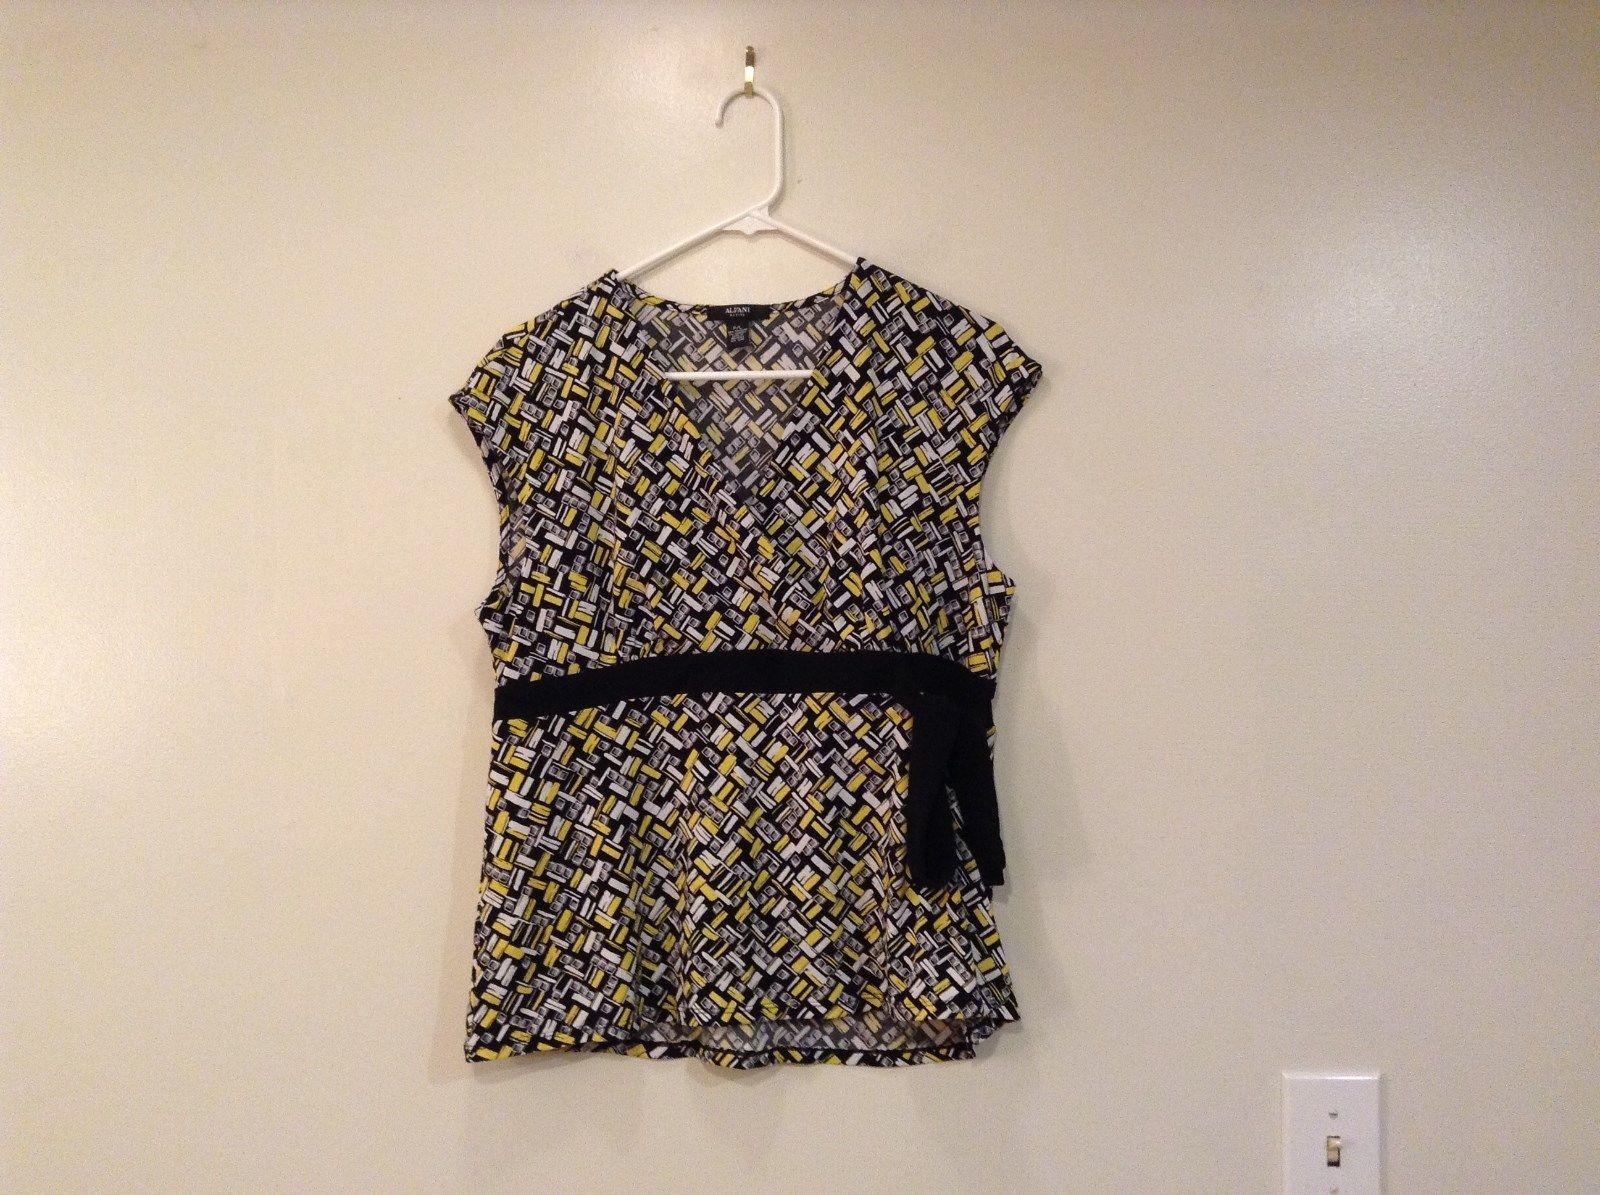 ALFANI Petite Sleeveless Black White Yellow with Black Trim Blouse Size PL